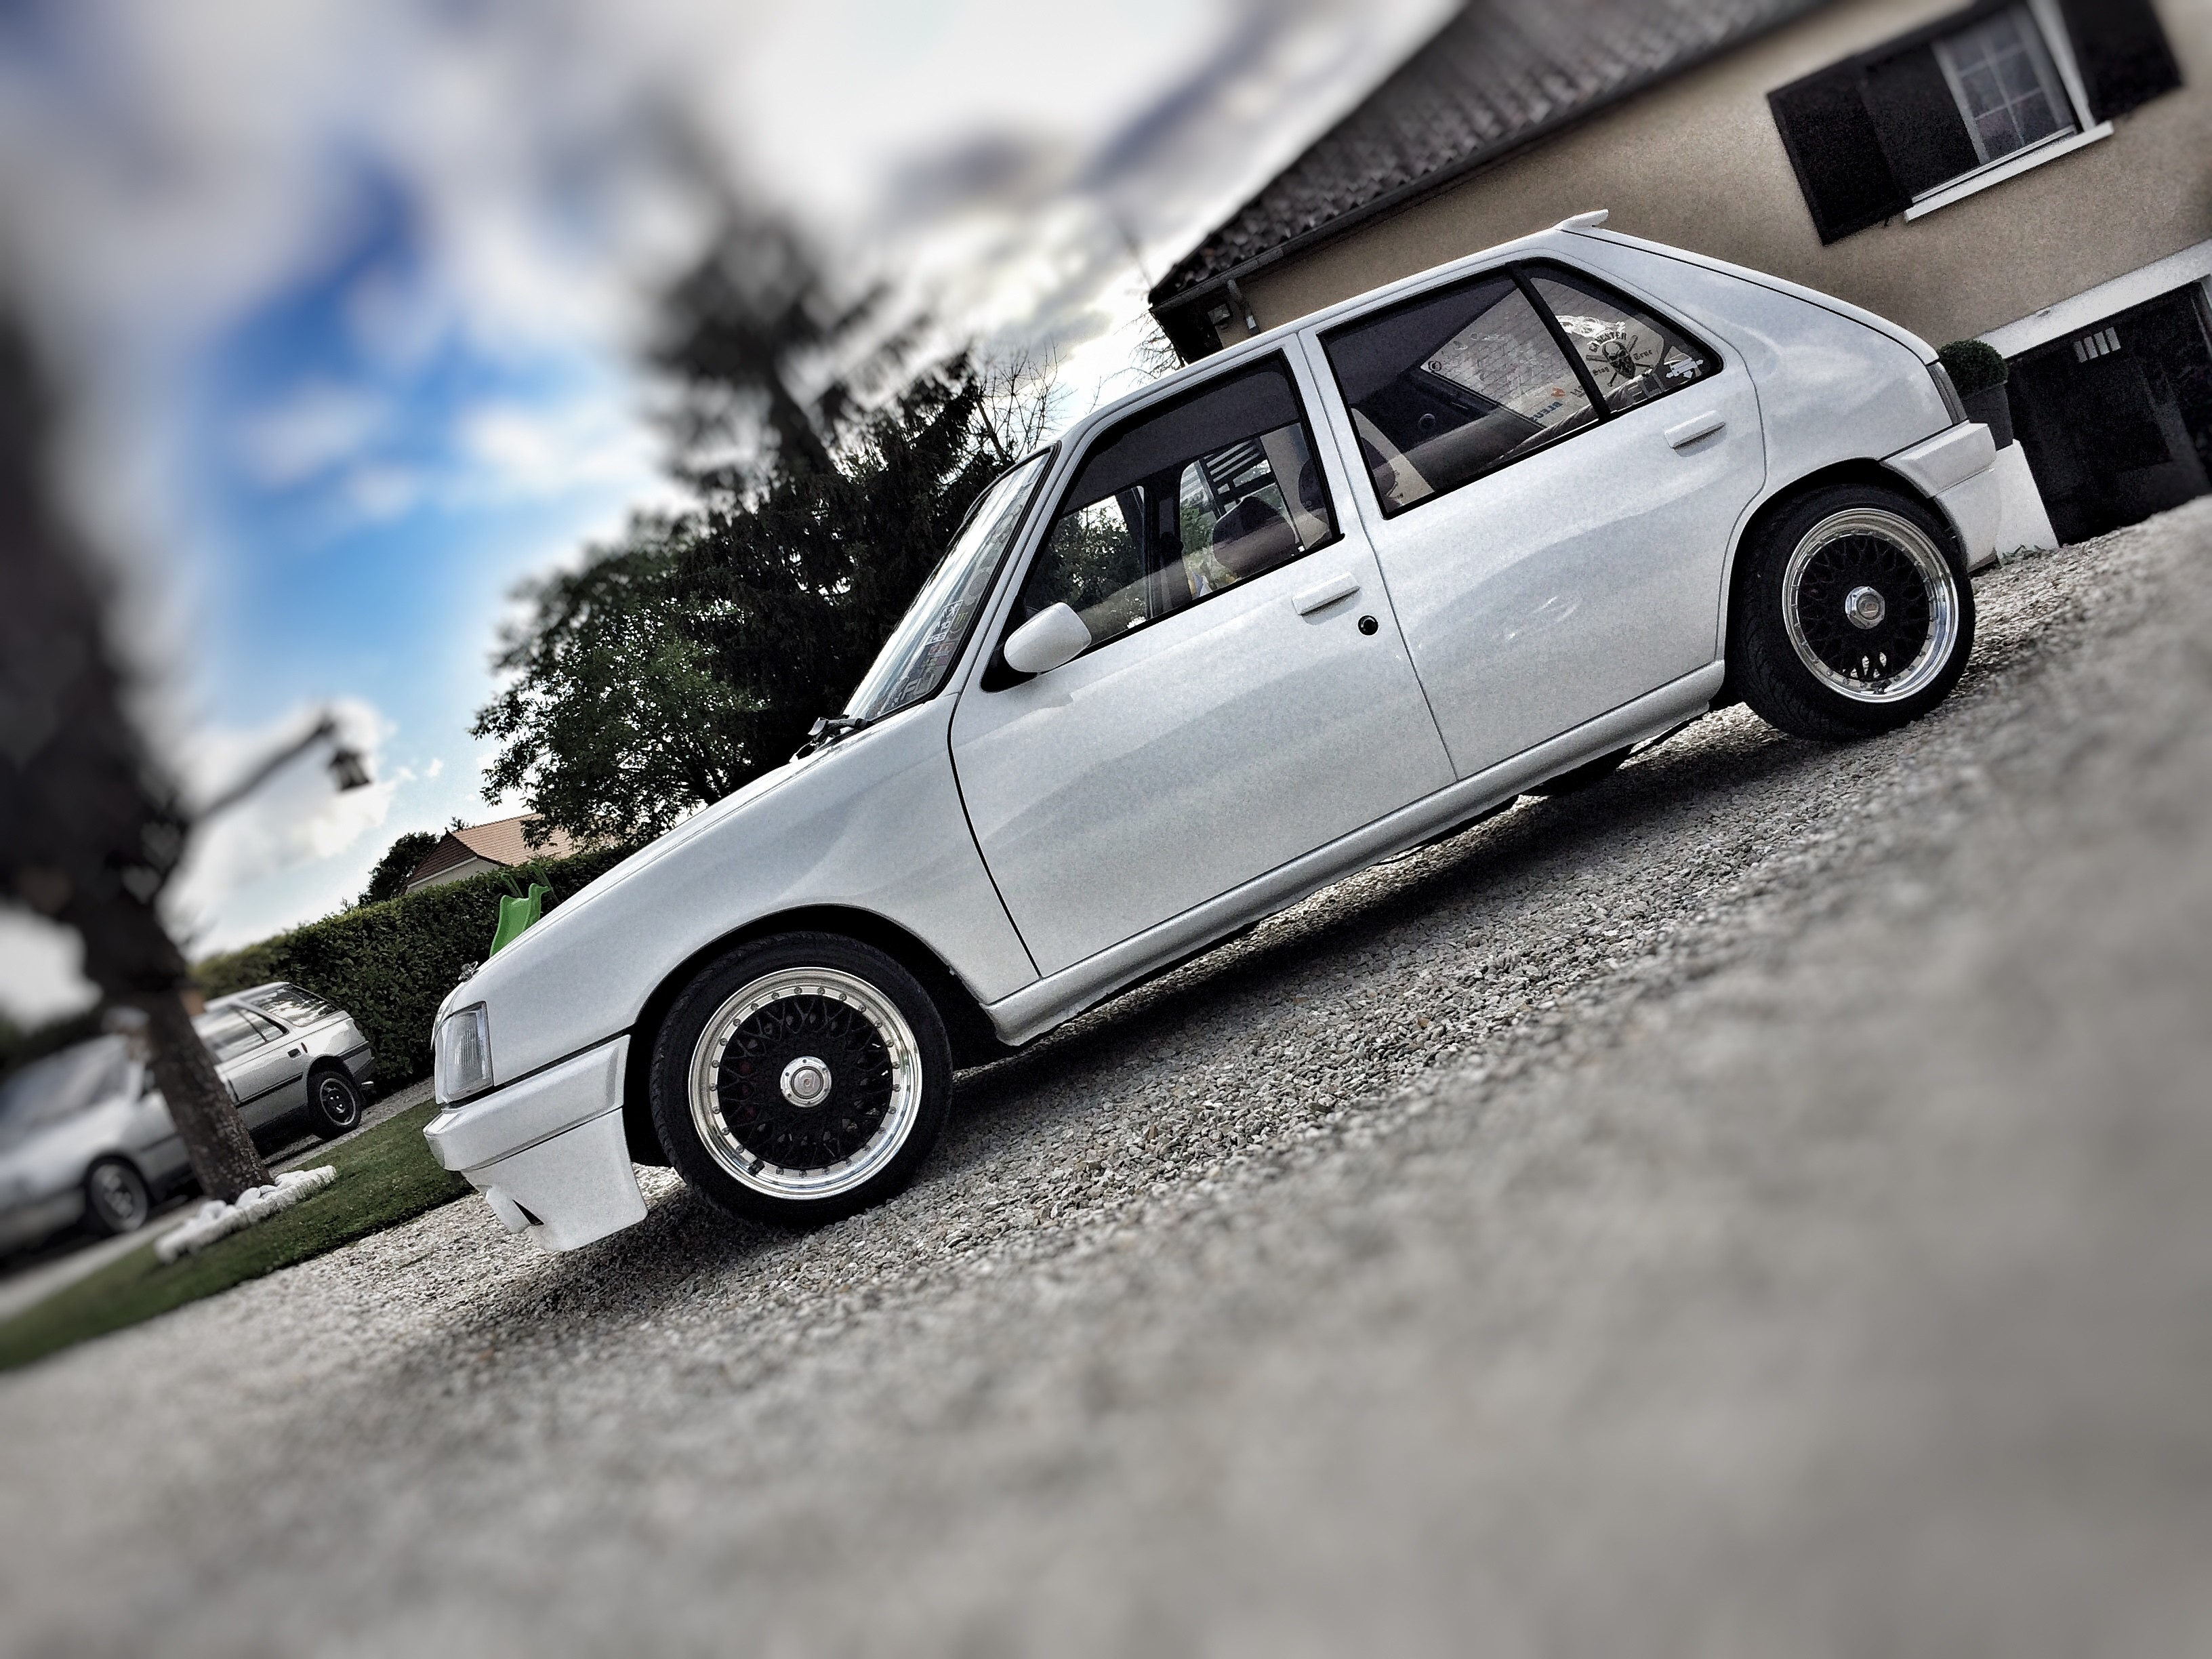 peugeot 205 tuning static car french car low style clean (16)